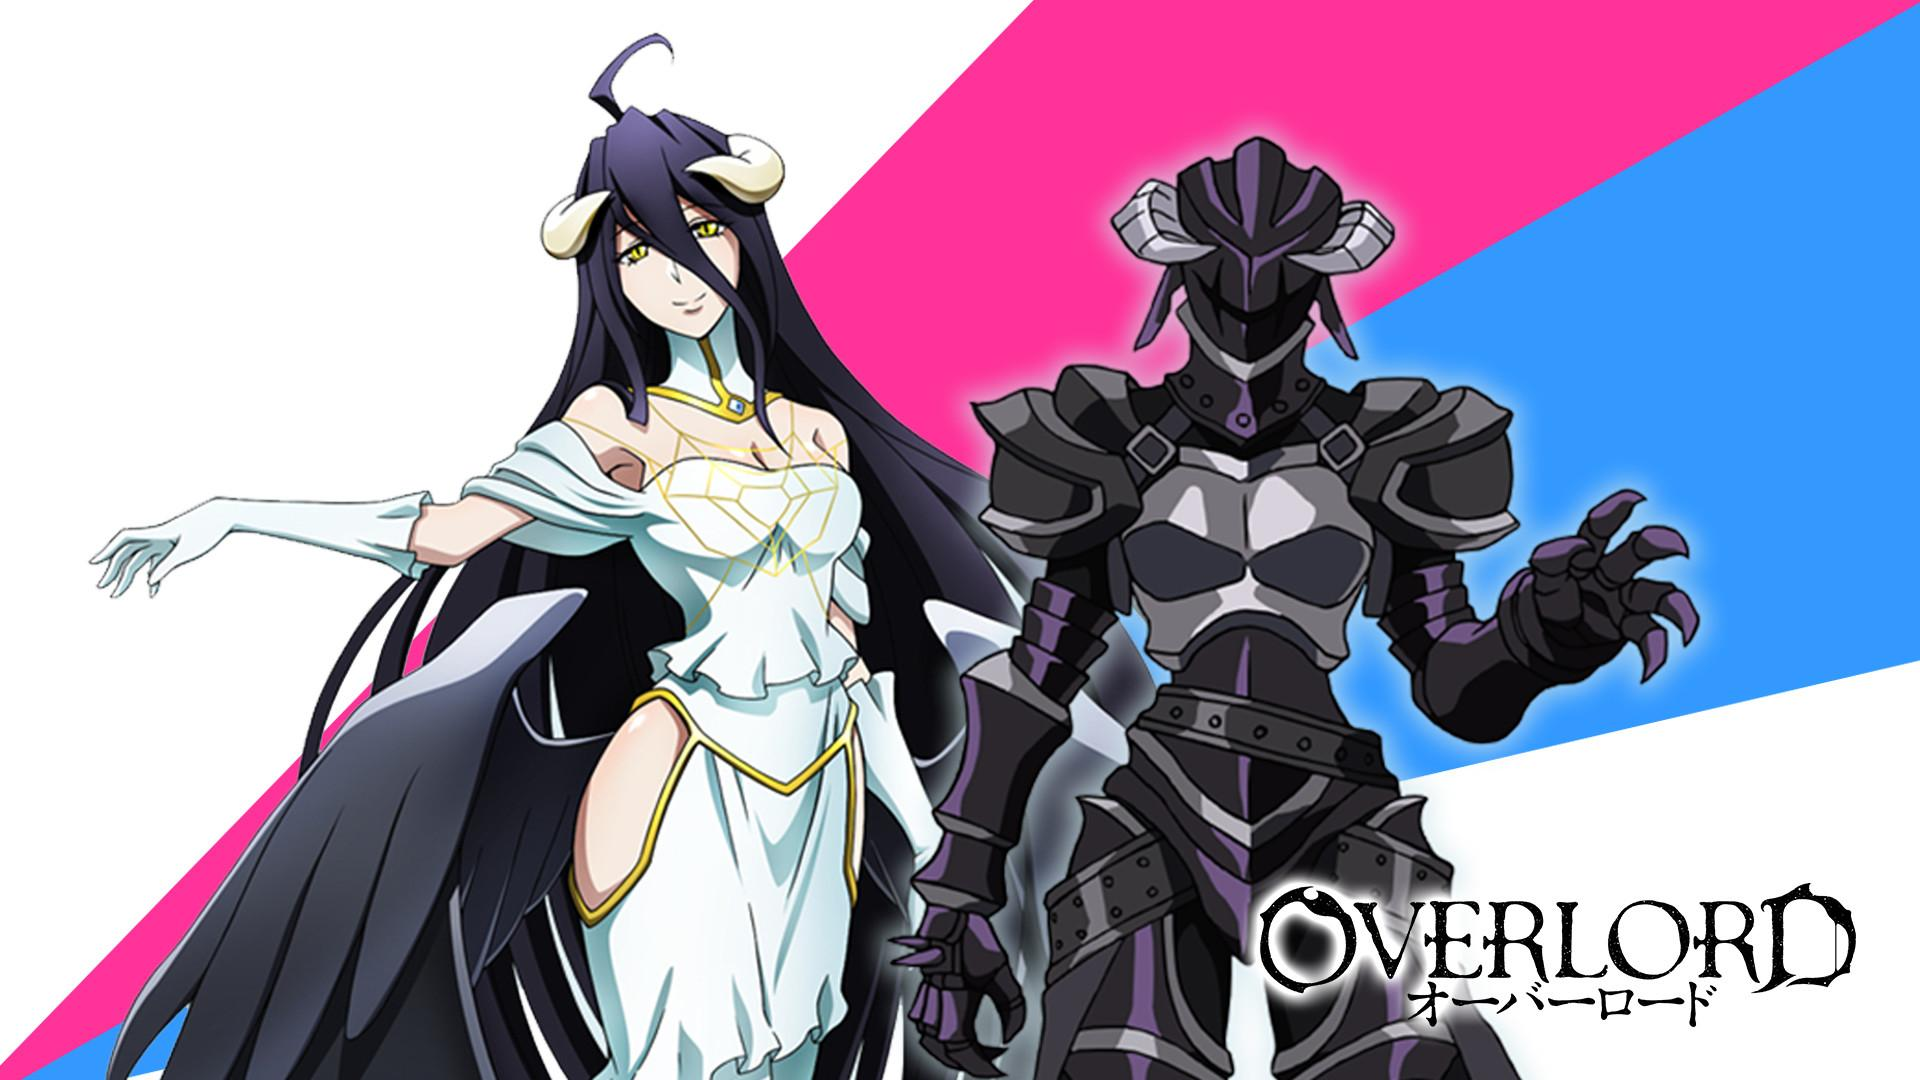 overlord wallpaper 1366x768